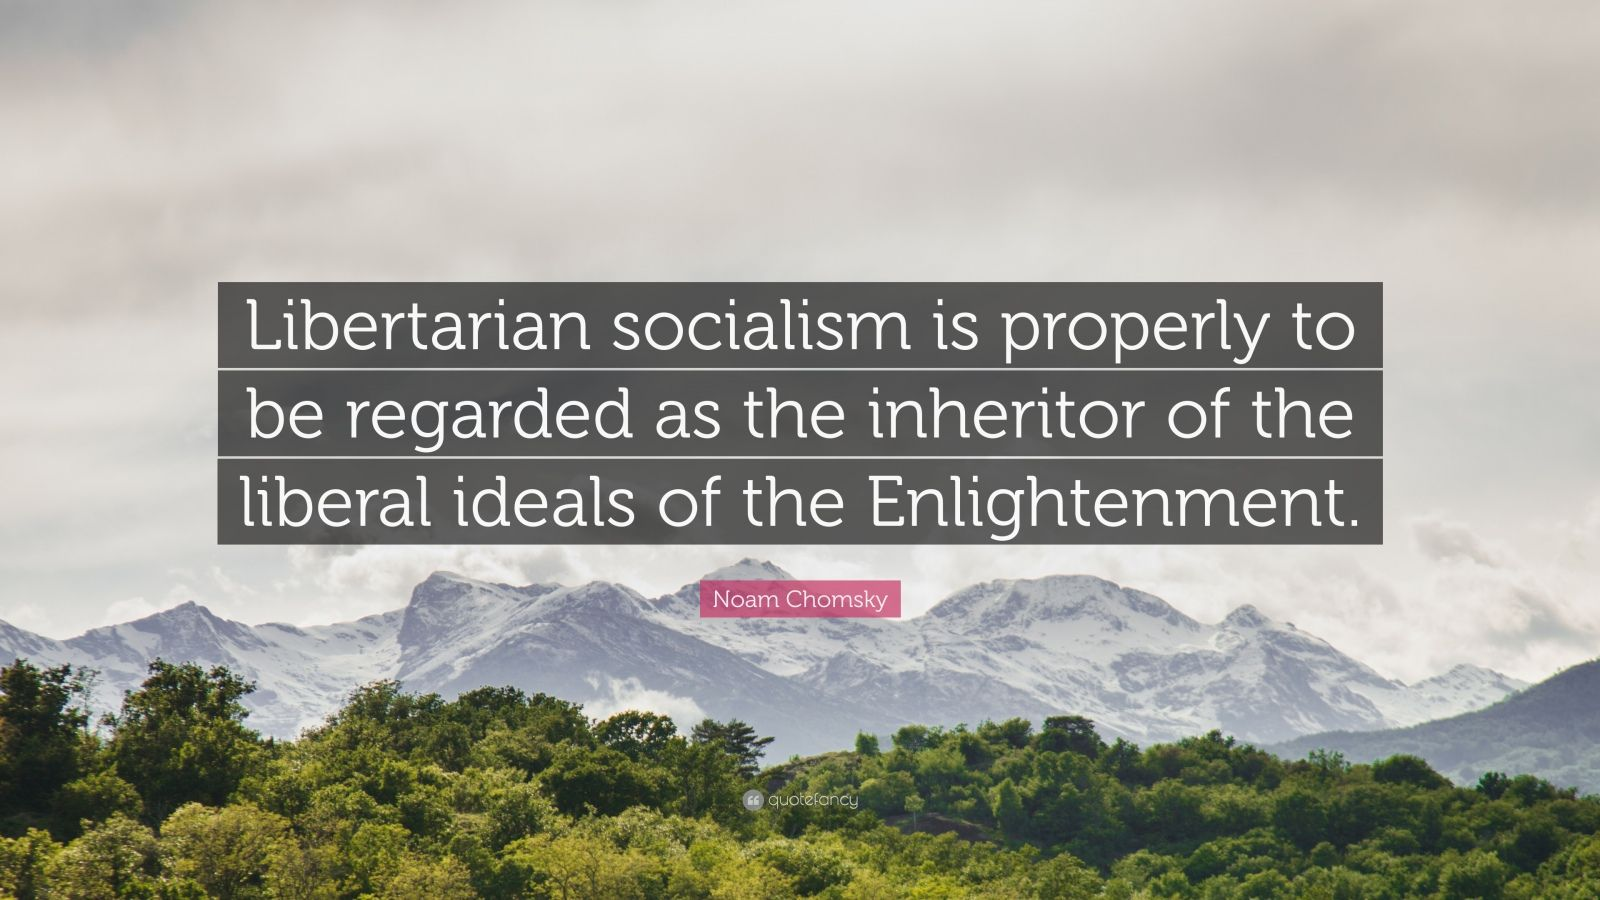 """Noam Chomsky Quote: """"Libertarian socialism is properly to be regarded as the inheritor of the liberal ideals of the Enlightenment."""""""